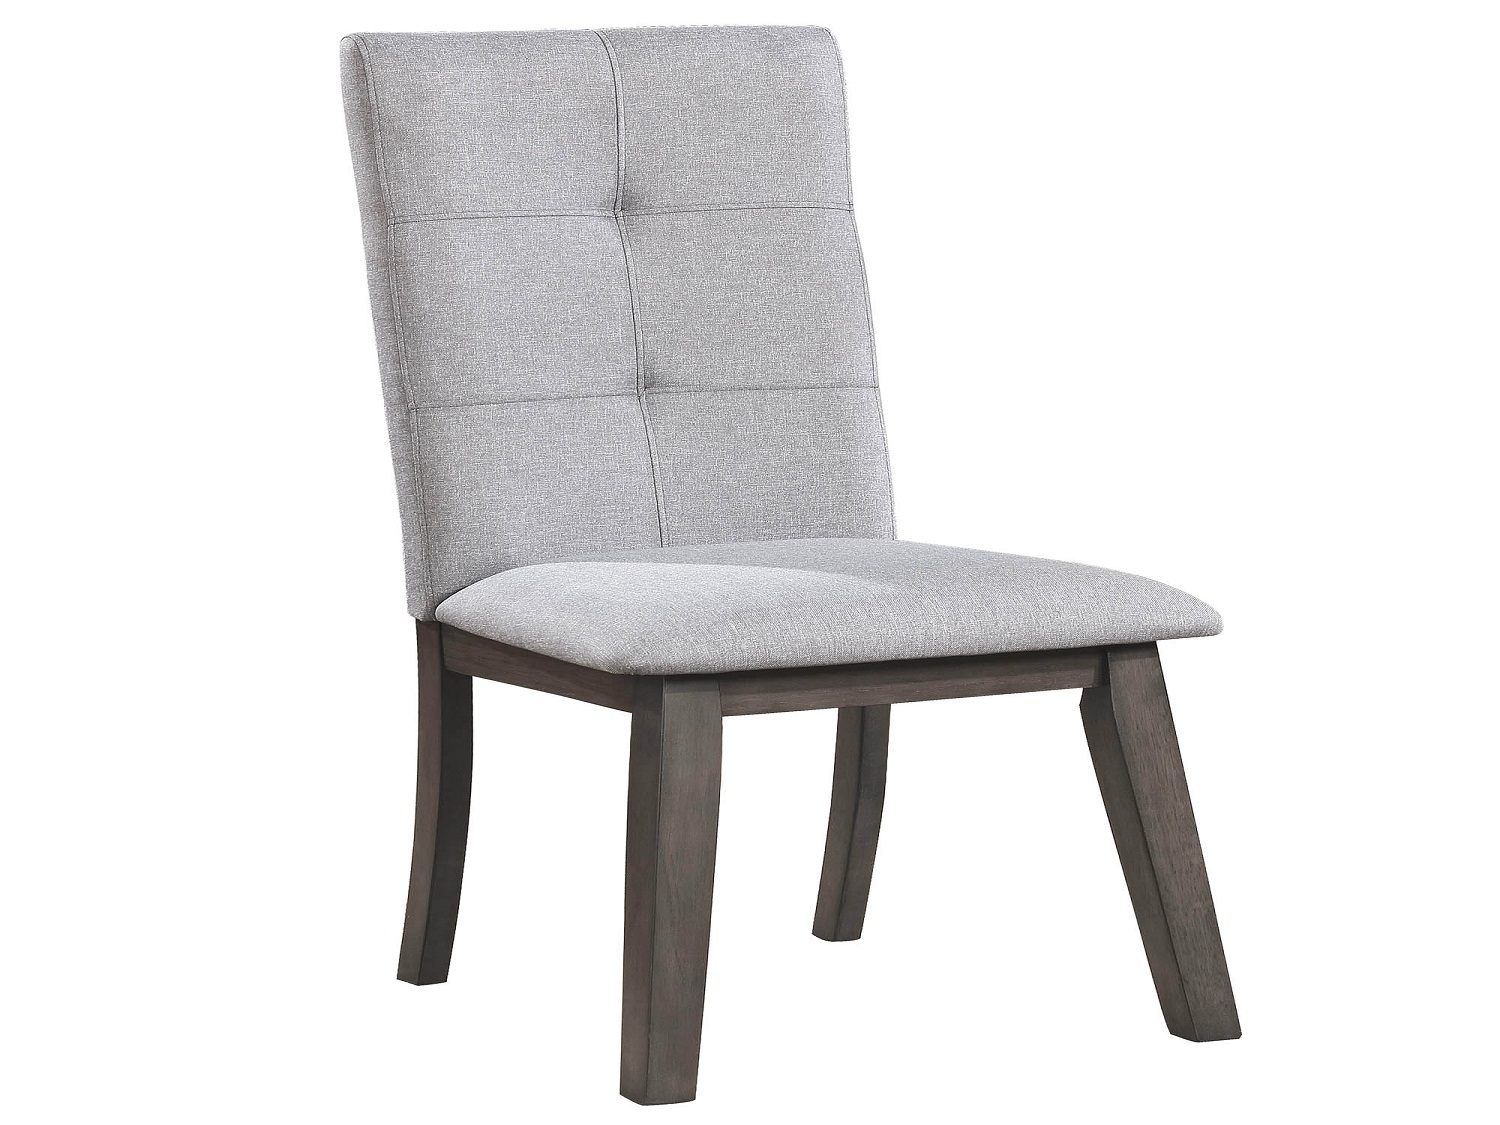 ASHLAND-SIDE CHAIR-GREY, 841173030384, Dining Chairs, ASHLAND-SIDE CHAIR-GREY from Dropship by Midha Furniture serving Brampton, Mississauga, Etobicoke, Toronto, Scraborough, Caledon, Cambridge, Oakville, Markham, Ajax, Pickering, Oshawa, Richmondhill, Kitchener, Hamilton, Cambridge, Waterloo and GTA area